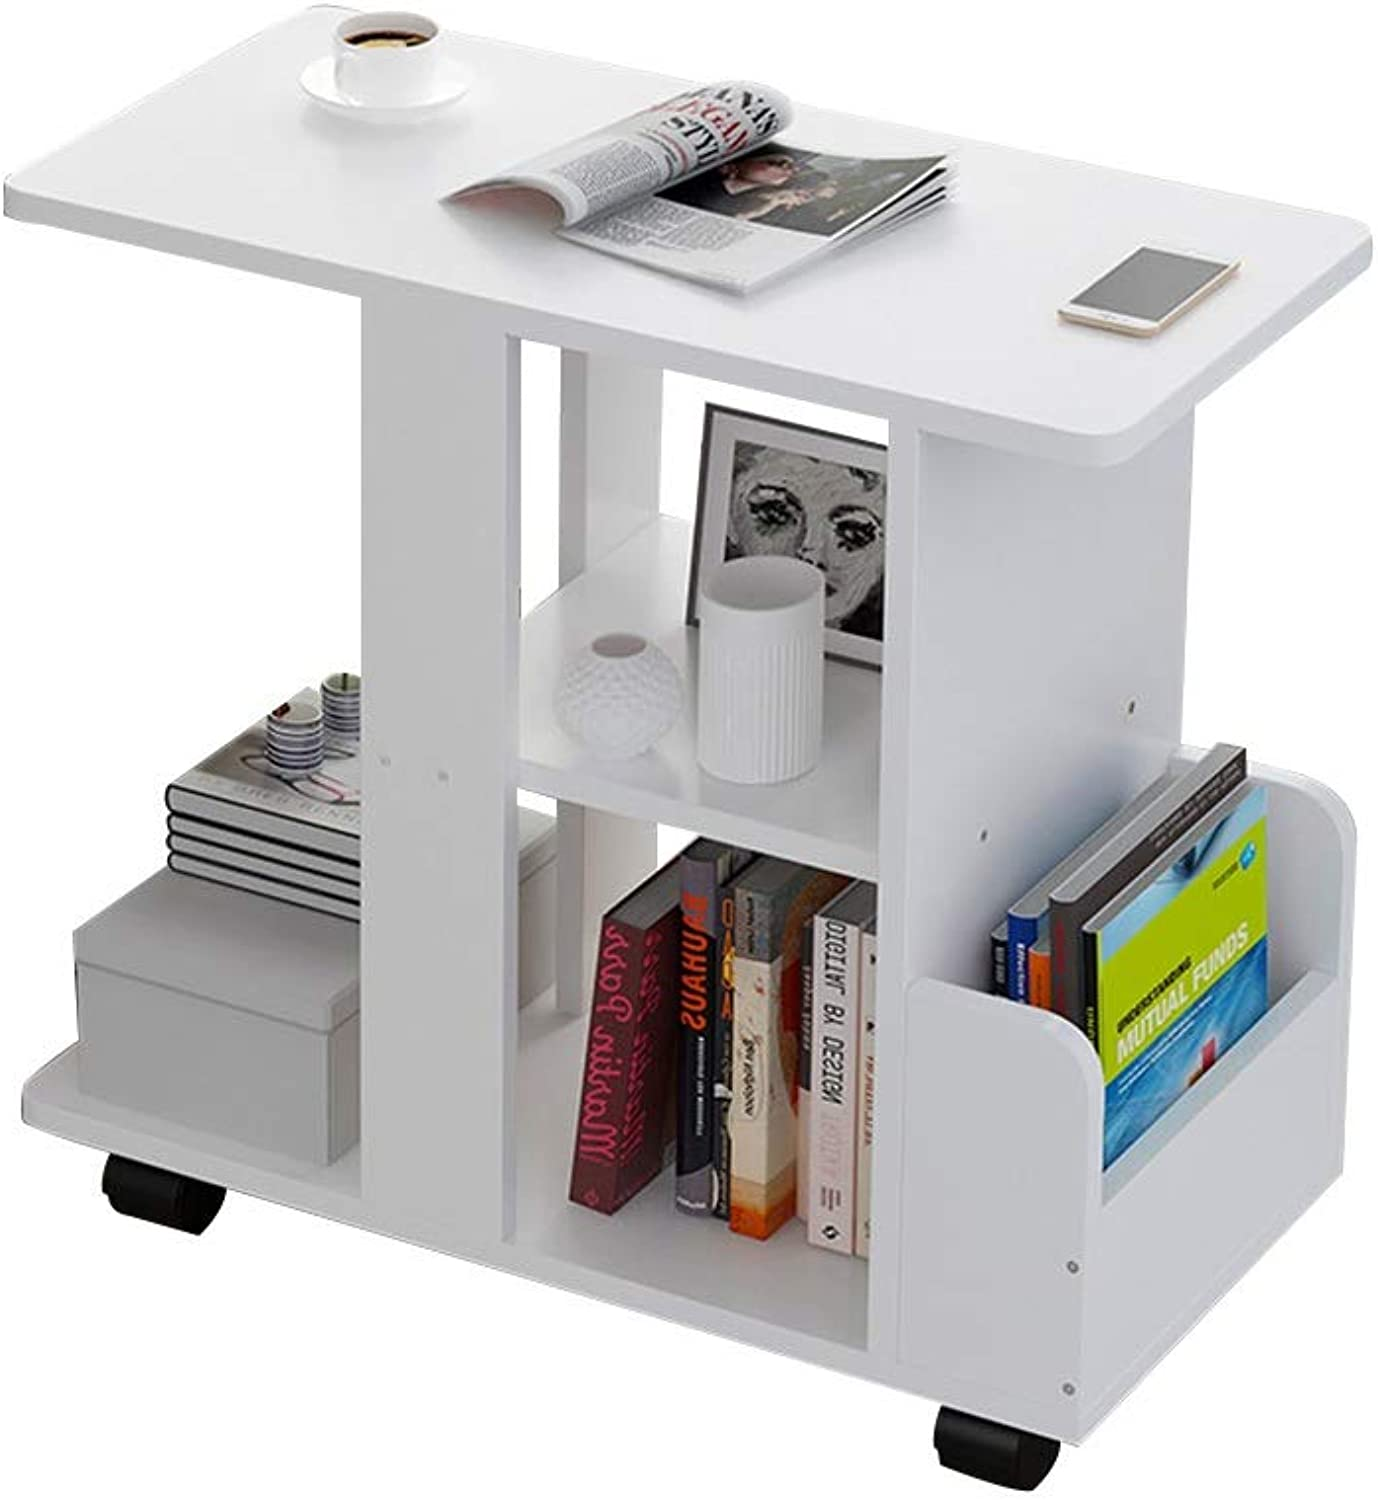 Table Corner Table, Multifunction Double Open Storage Side Table Mobile Sofa Side Cabinet Small Table in Living Room Modern Simplicity Small Coffee Table (color   White)